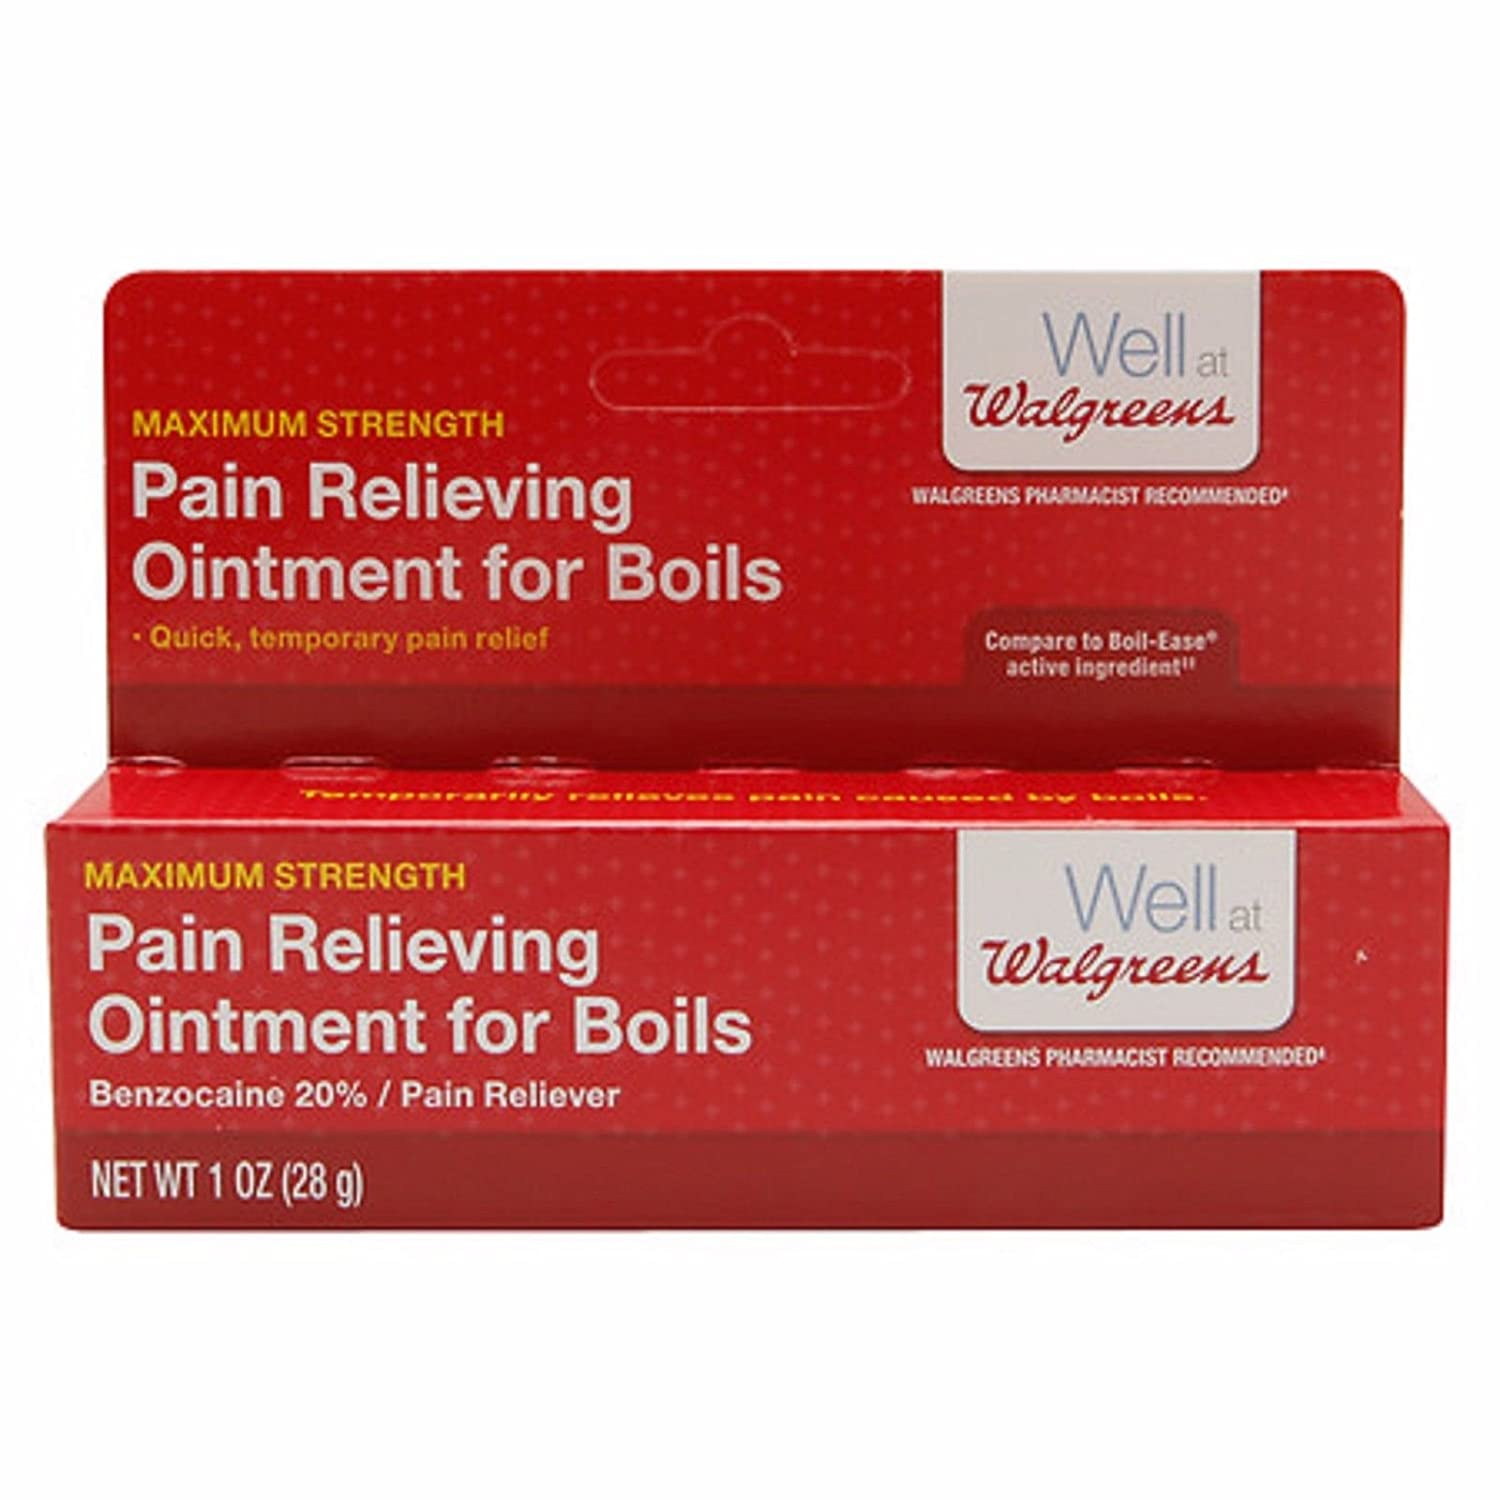 Amazon com: Walgreens Pain Relieving Ointment for Boils: Health